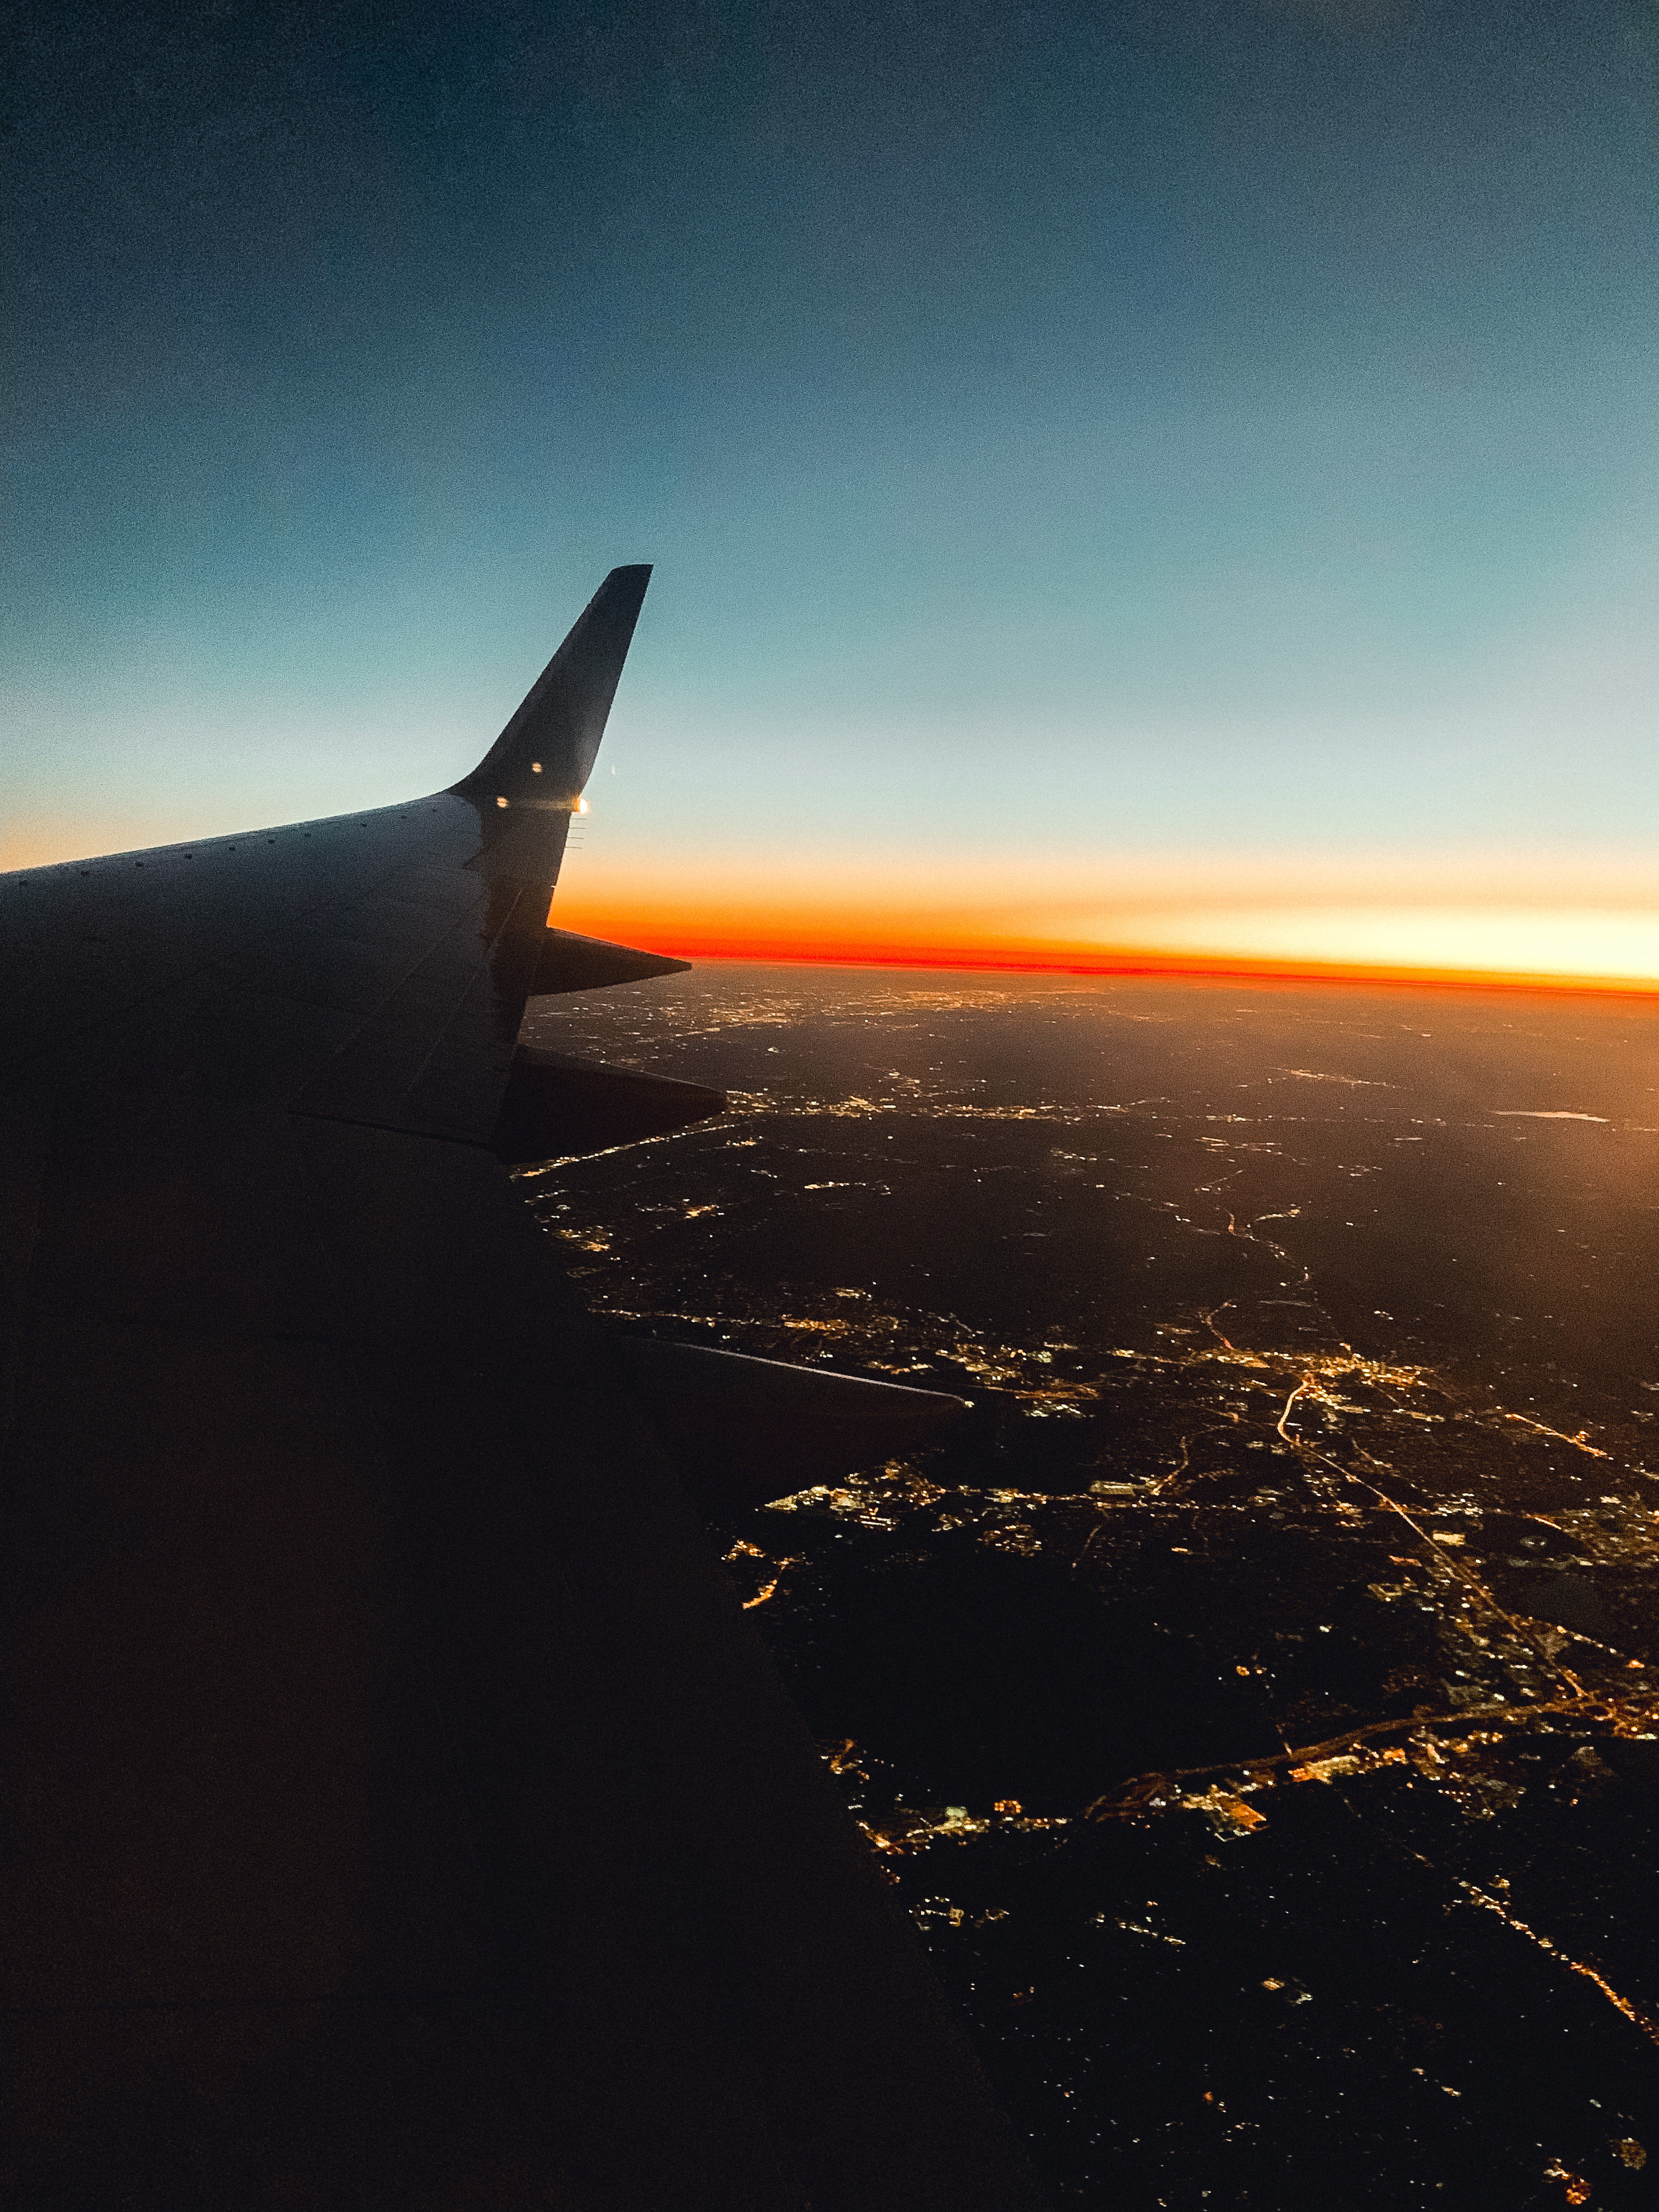 The world looked like it was on fire when we were landing in NY!